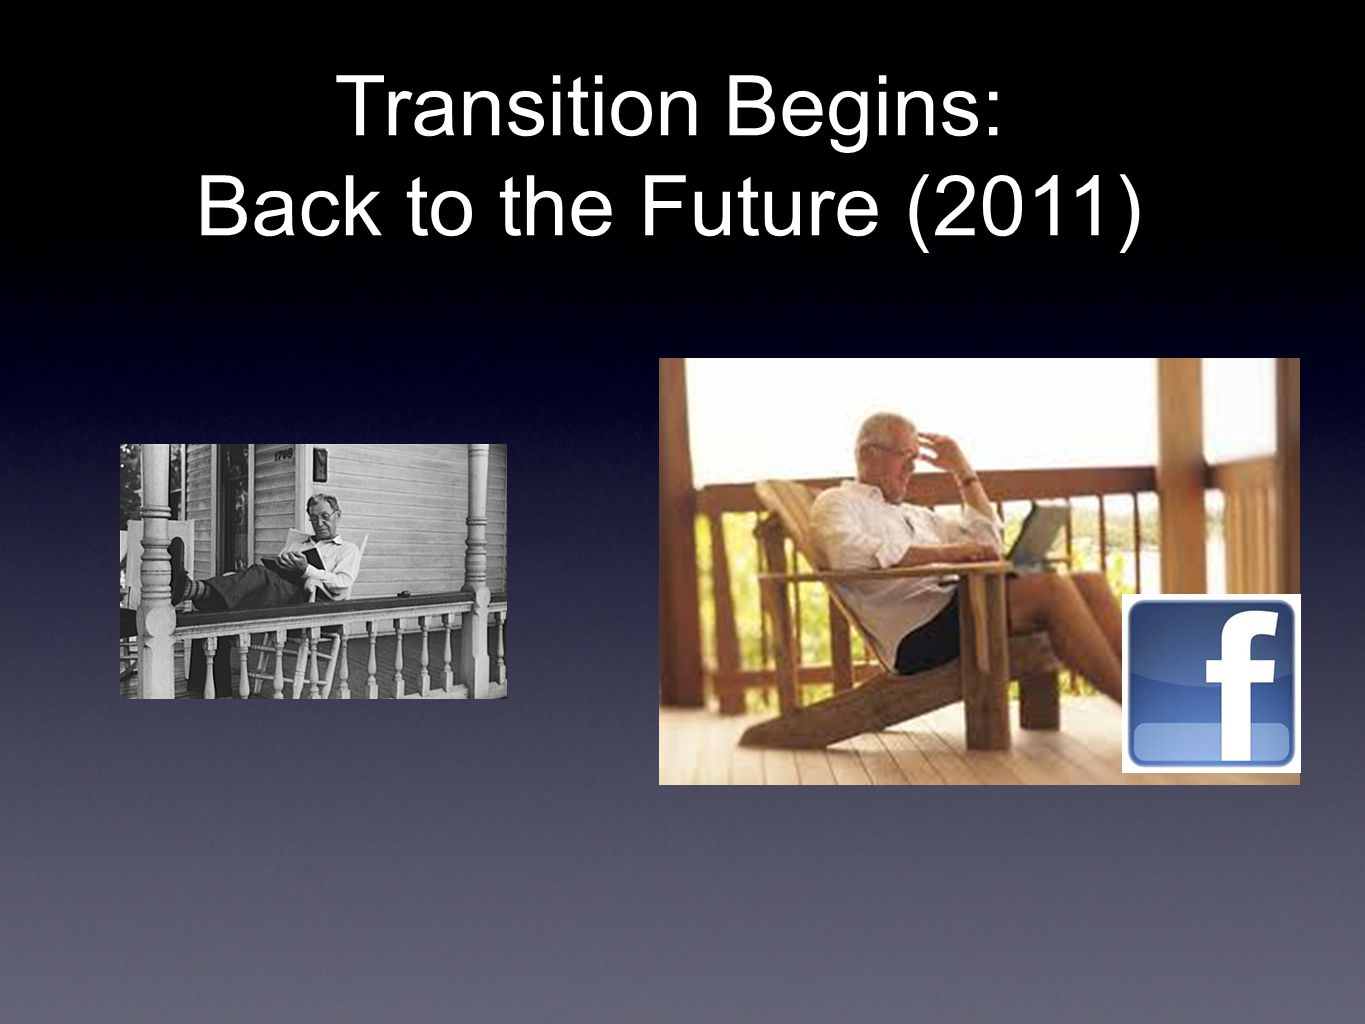 Transition Begins: Back to the Future (2011)